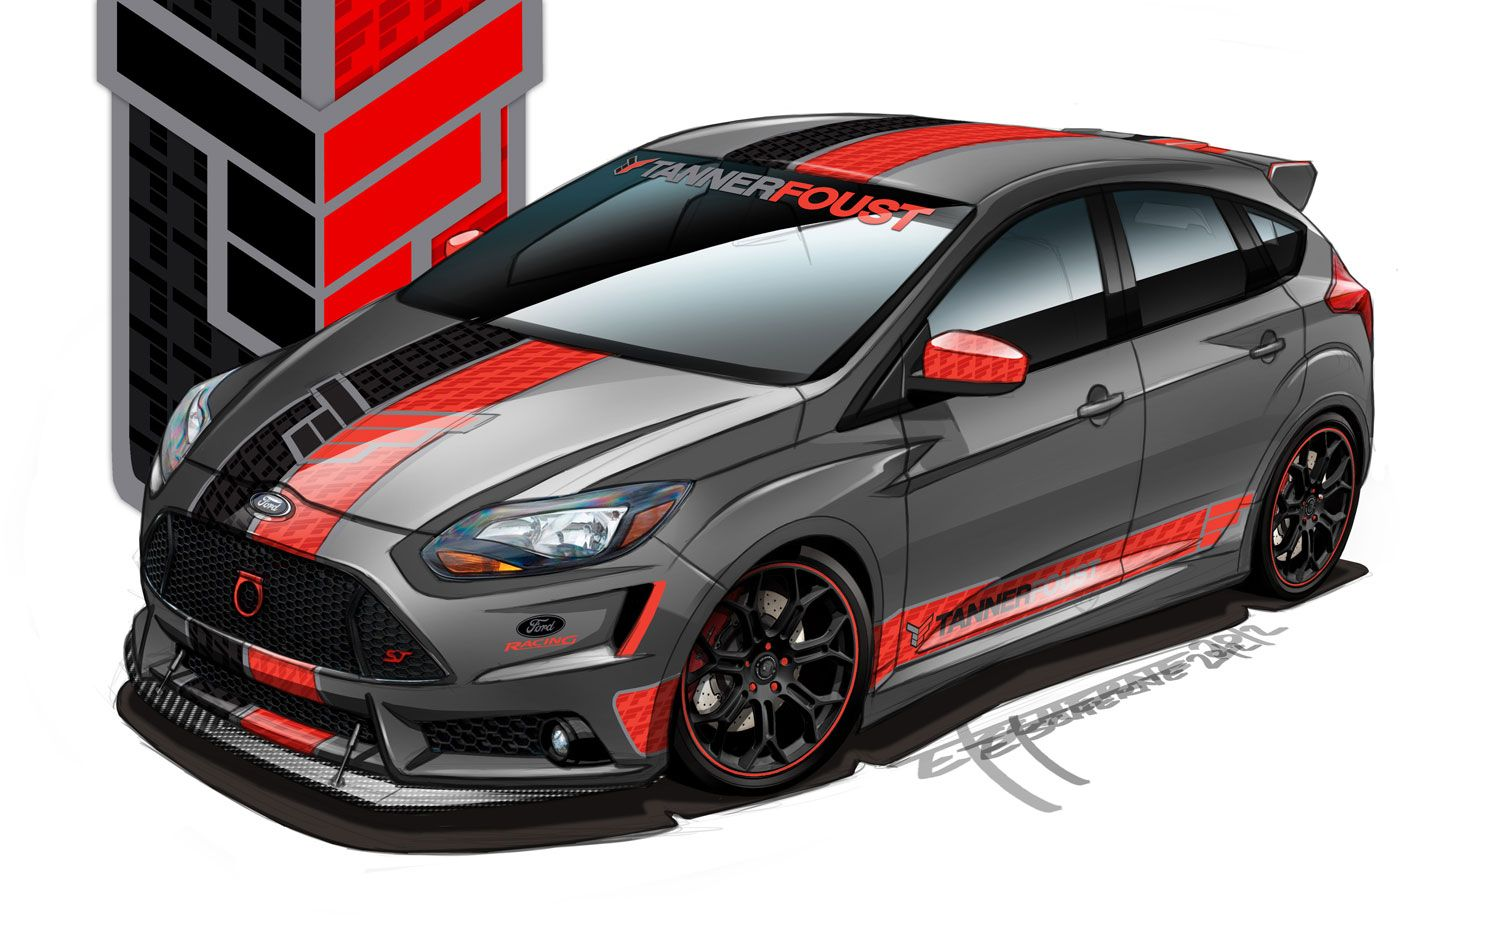 Customized 2013 Ford Focus St Show Cars Previewed Ahead Of Sema Debut Ford Focus Automobile Macchine Sportive